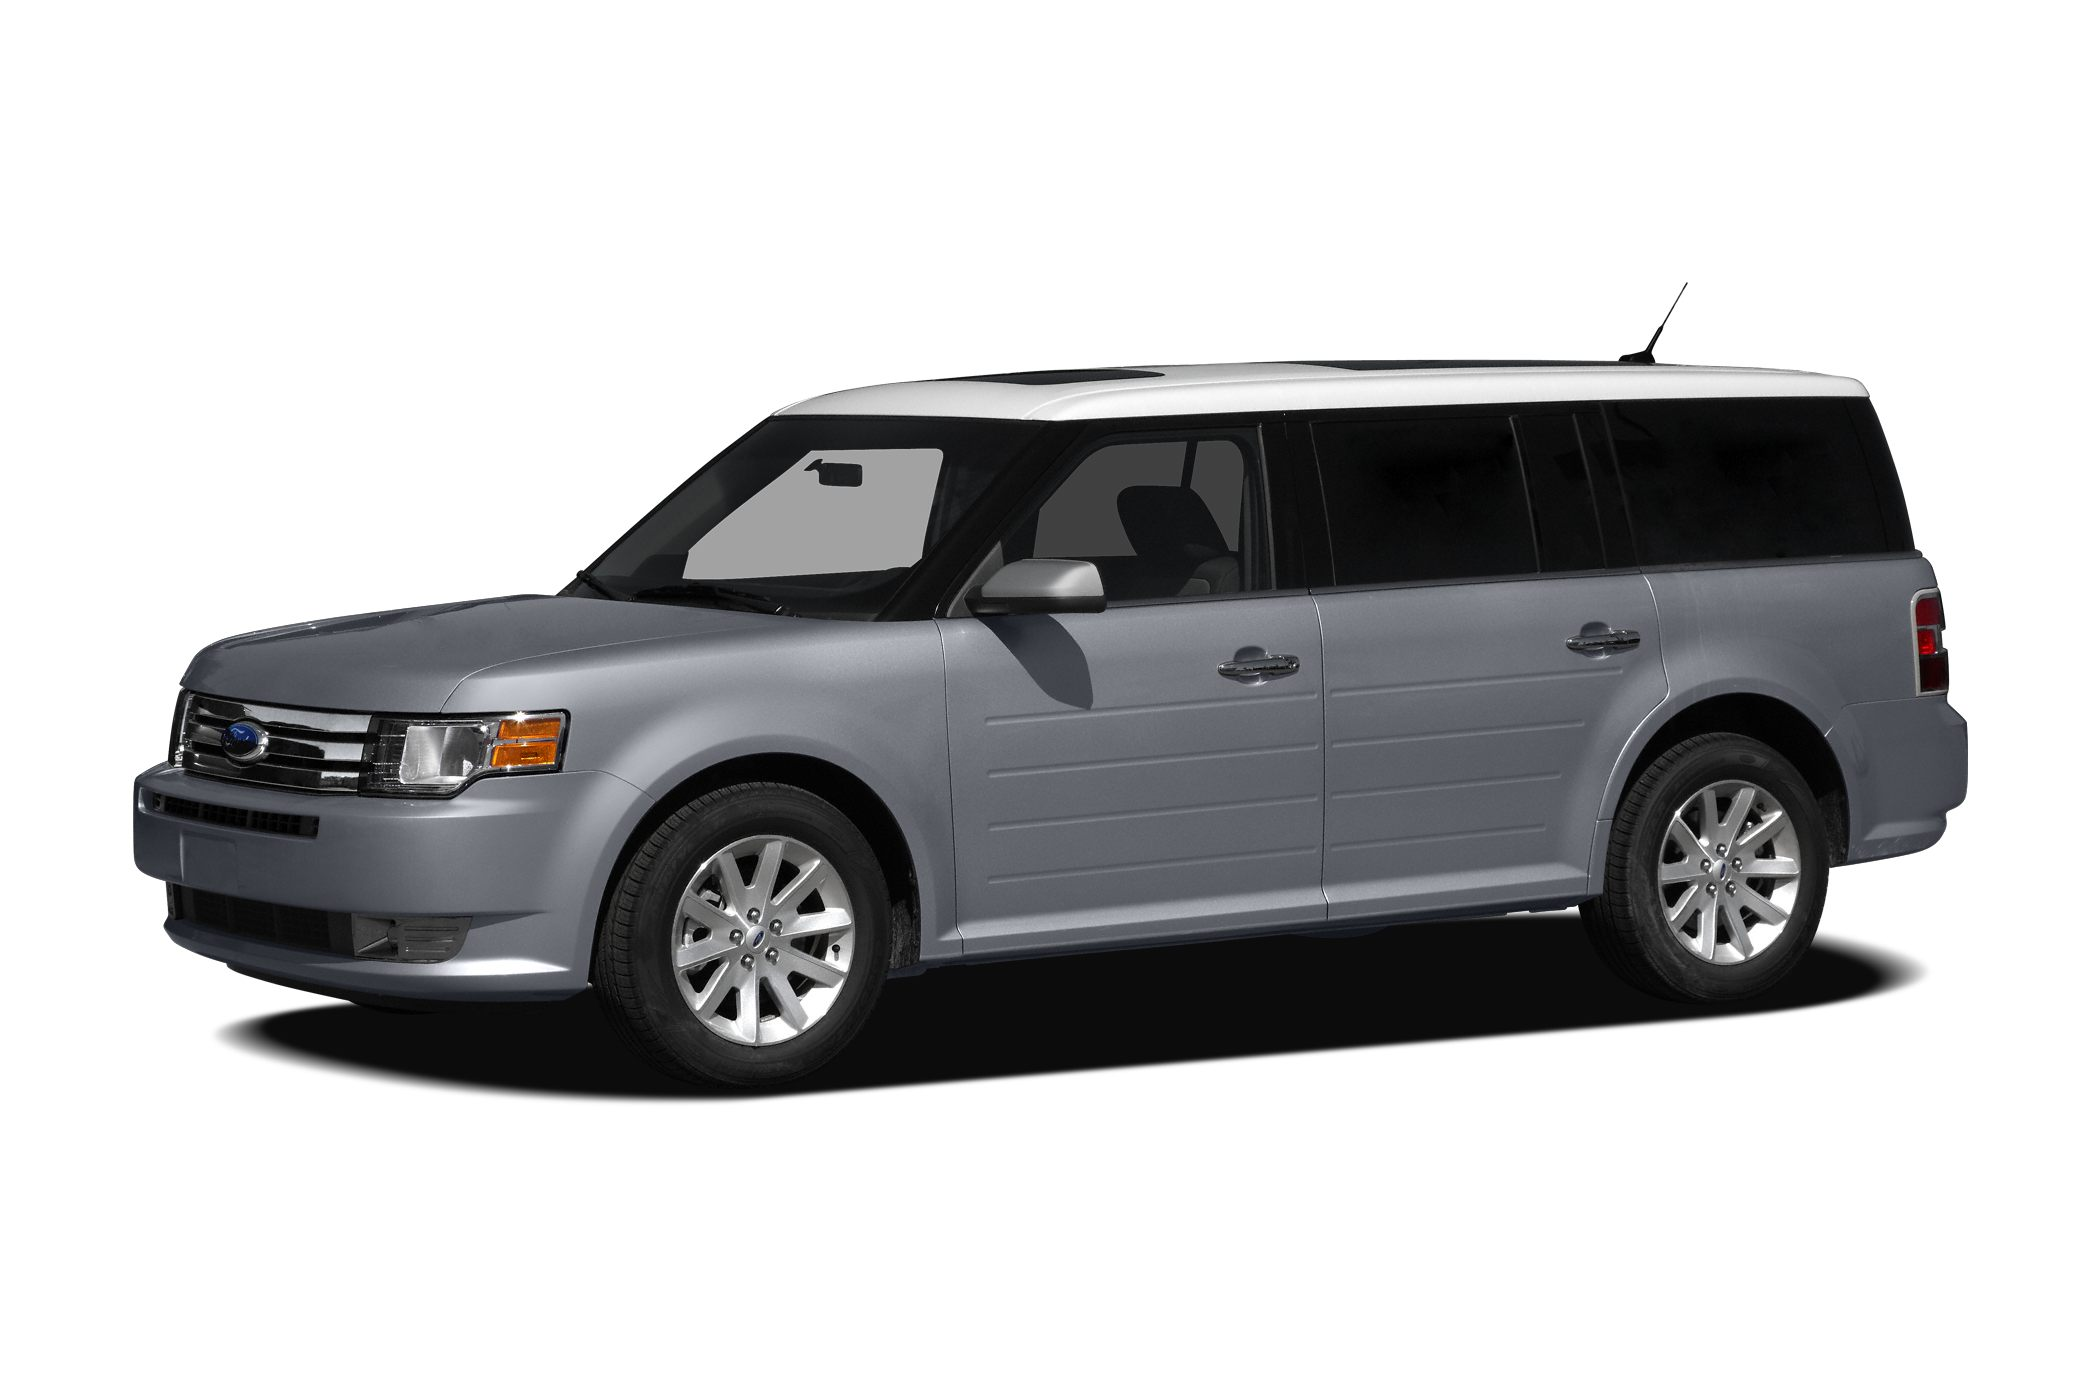 2010 Ford Flex Limited SUV for sale in Kilgore for $18,290 with 86,447 miles.